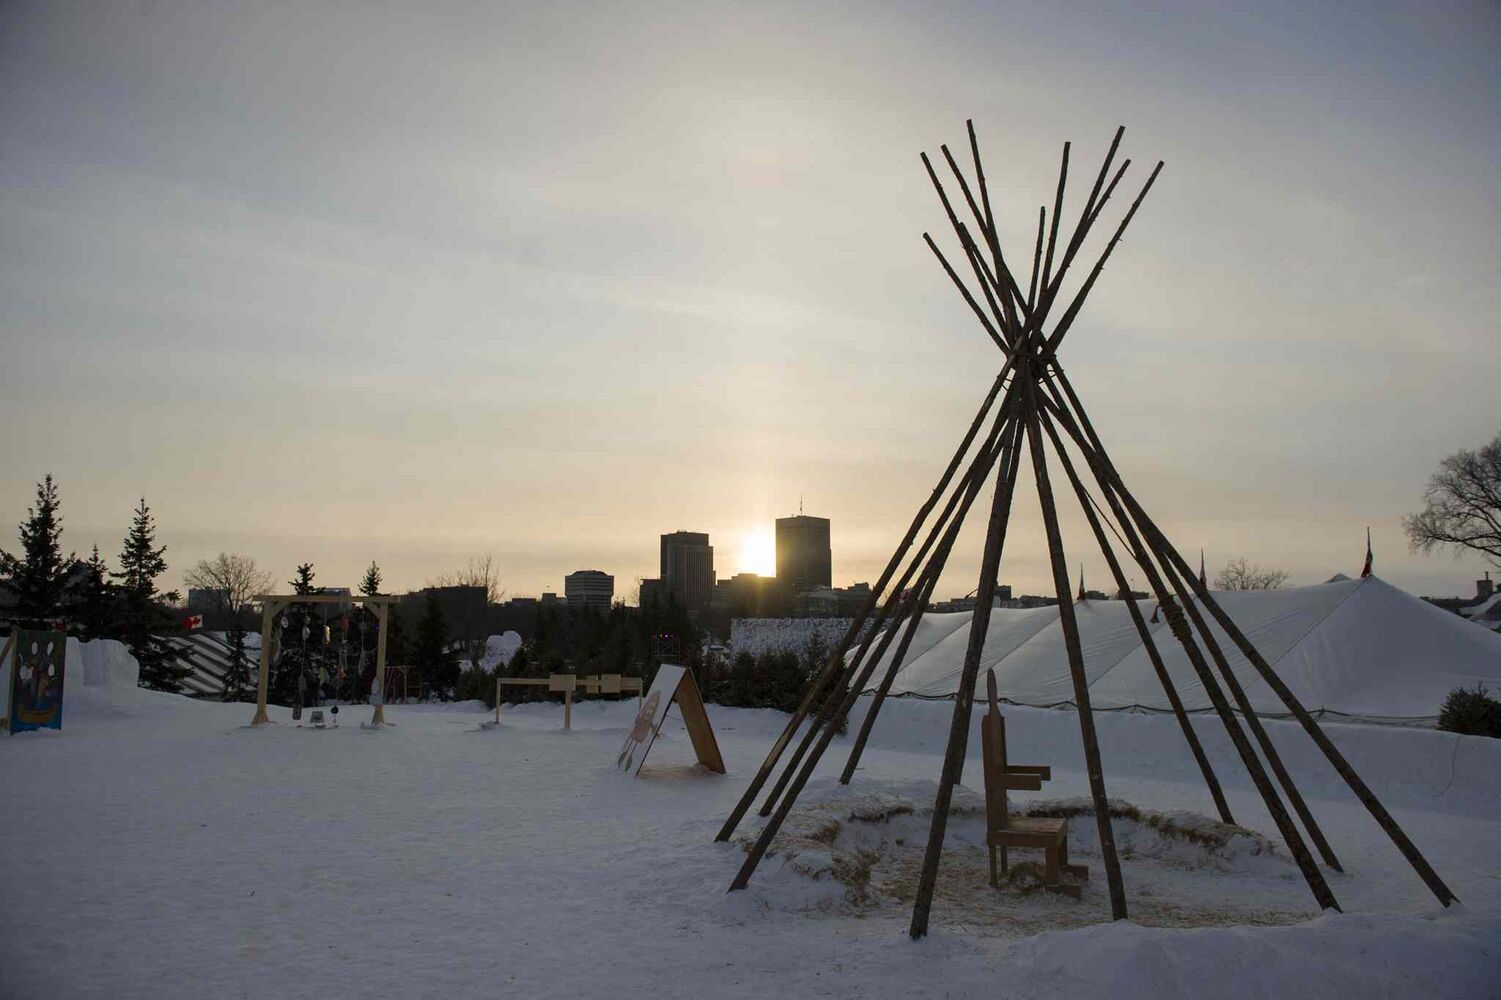 The sun sets on the final Saturday of this year's Festival du Voyageur.